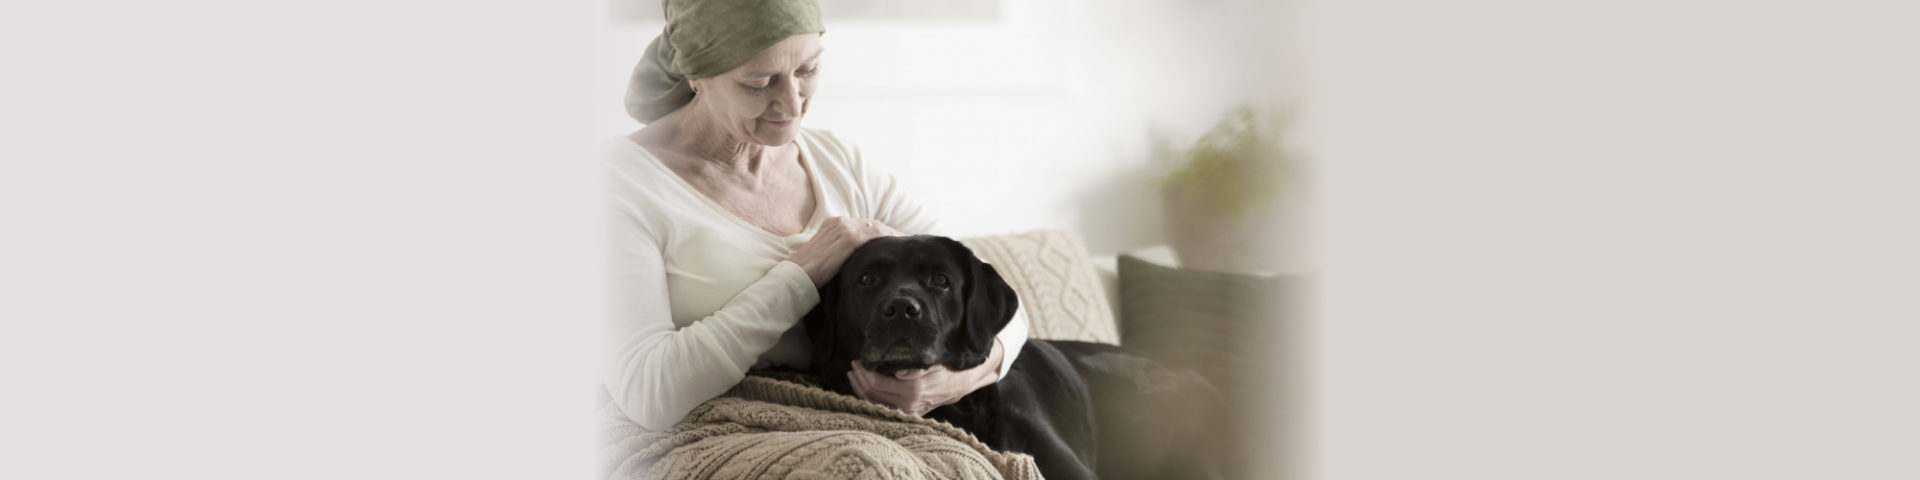 Sick grandmother with headscarf stroking dog while sitting on sofa